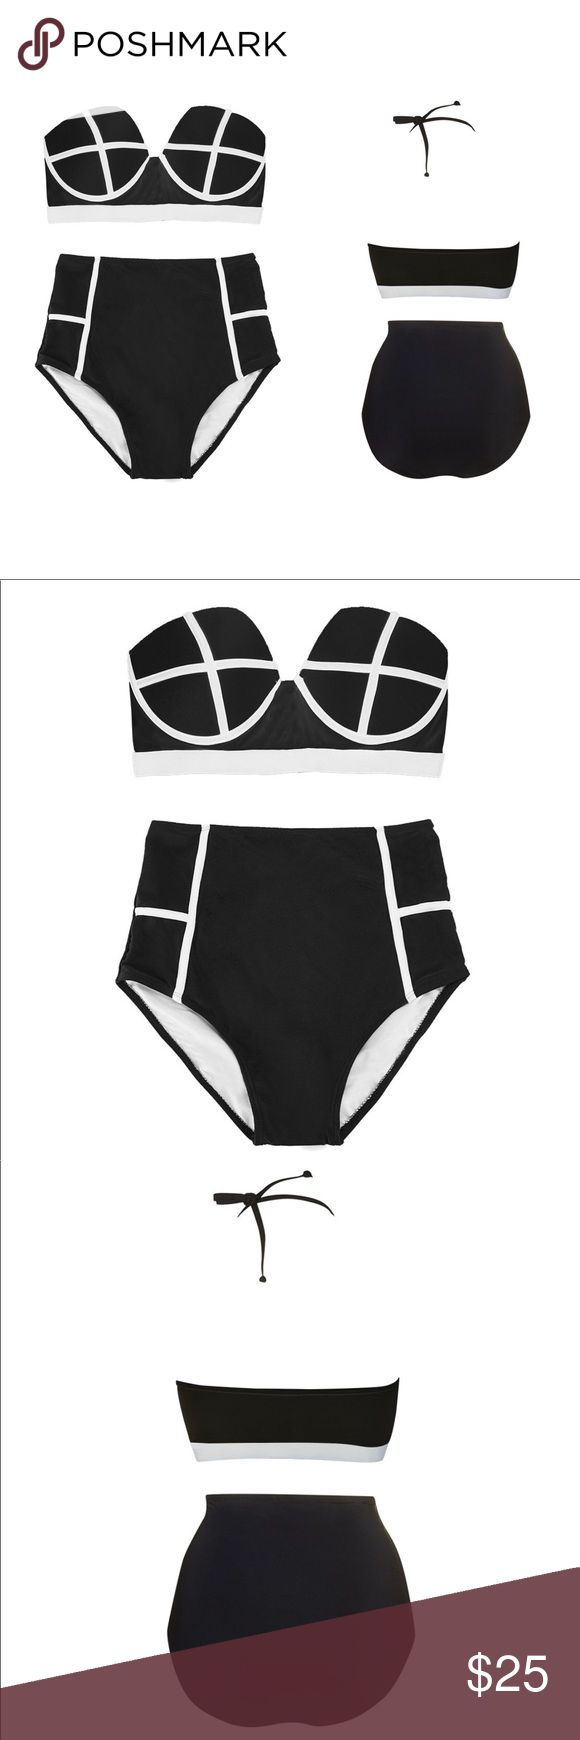 High Waist Bikini SIZES IN RE-ADJUSTING: S = US 0-2, M = US 4-6, L =US 8-10, XL = US 12-14, XXL = US 14-16. Please also refer to the detailed size chart below and the WASHING LABEL. Sexy appearance: High intensity memory cotton push-up mold cup to make you comfortable; Accentuate your physical features: Adjustable straps create a slim look for stunning and seductive curves Cold Hand Wash is suggested to maintain the elasticity: 82% Nylon + 18% Spandex, 90% Polyester+10% Spandex Lining Swim…